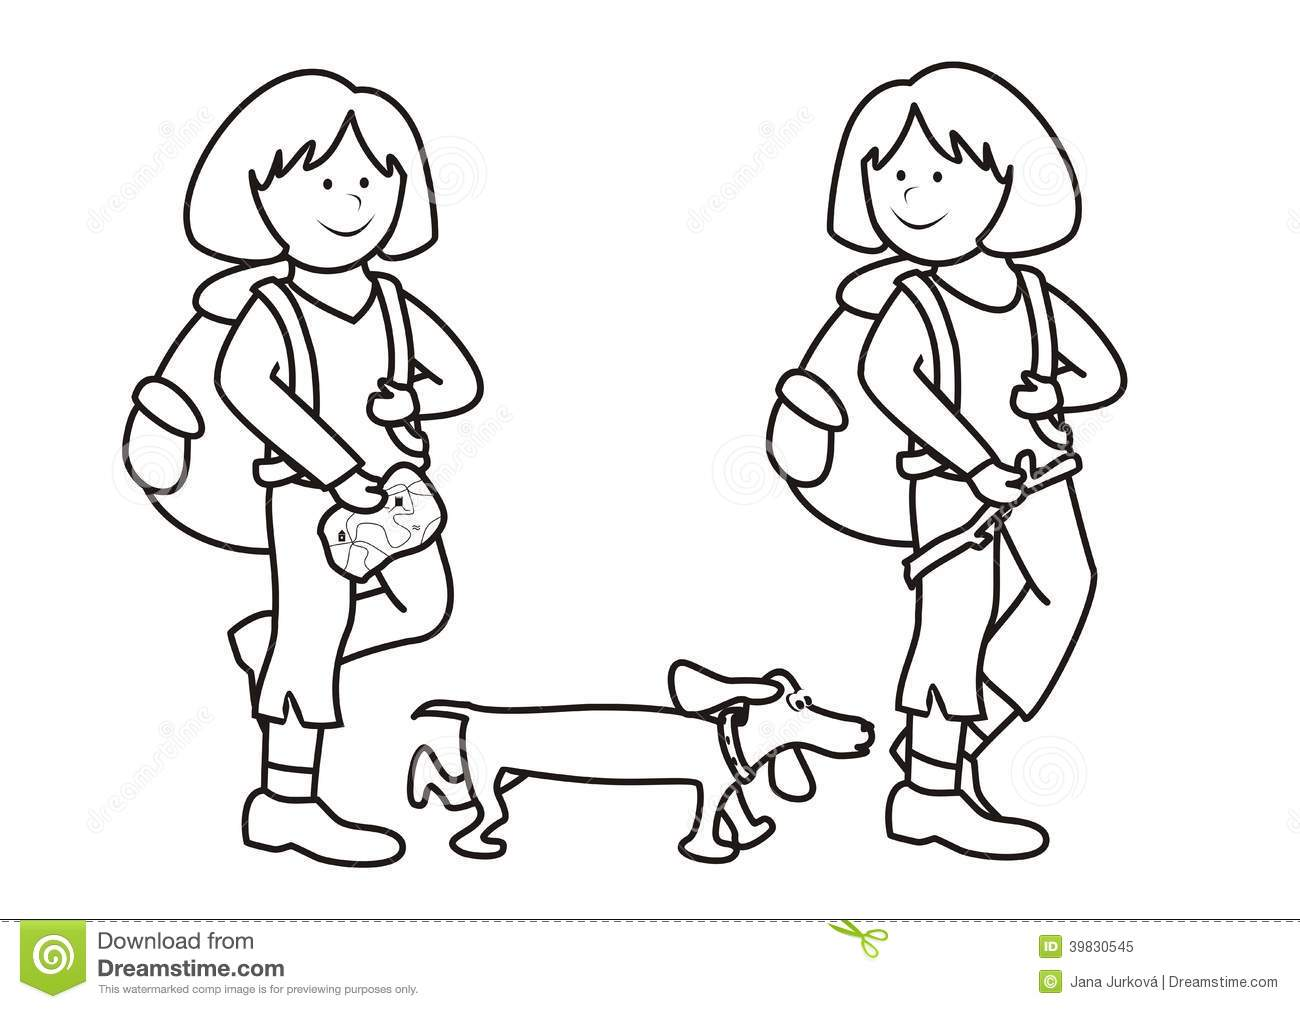 th?id=OIP.iJr9ibzJobWxteAHr8eYnwEsDo&pid=15.1 including dog coloring pages for girls 1 on dog coloring pages for girls including dog coloring pages for girls 2 on dog coloring pages for girls in addition dog coloring pages for girls 3 on dog coloring pages for girls further american foxhound on dog coloring pages for girls